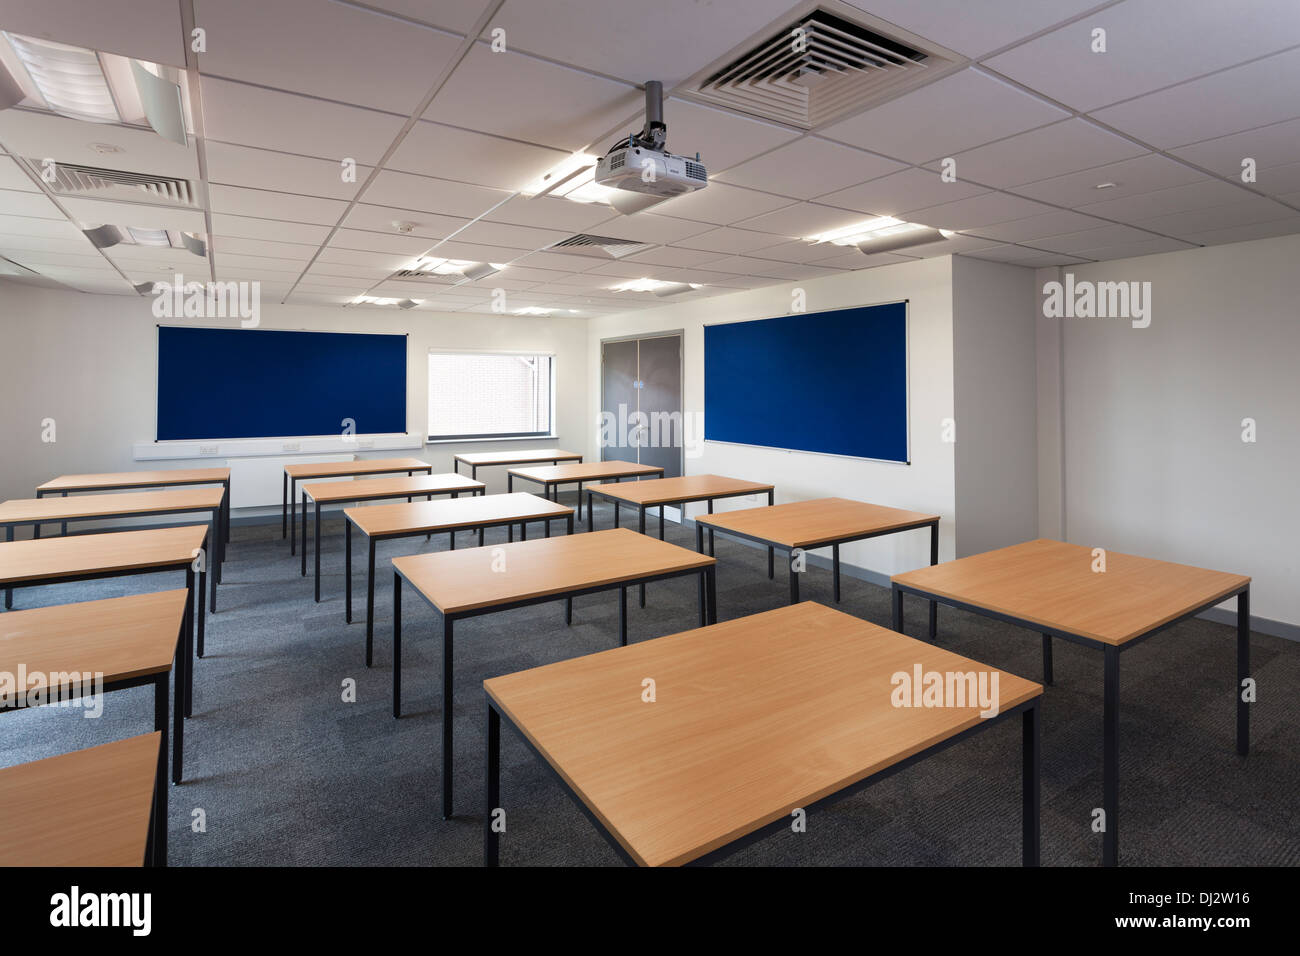 Empty new school classroom laid out with desk tables. - Stock Image